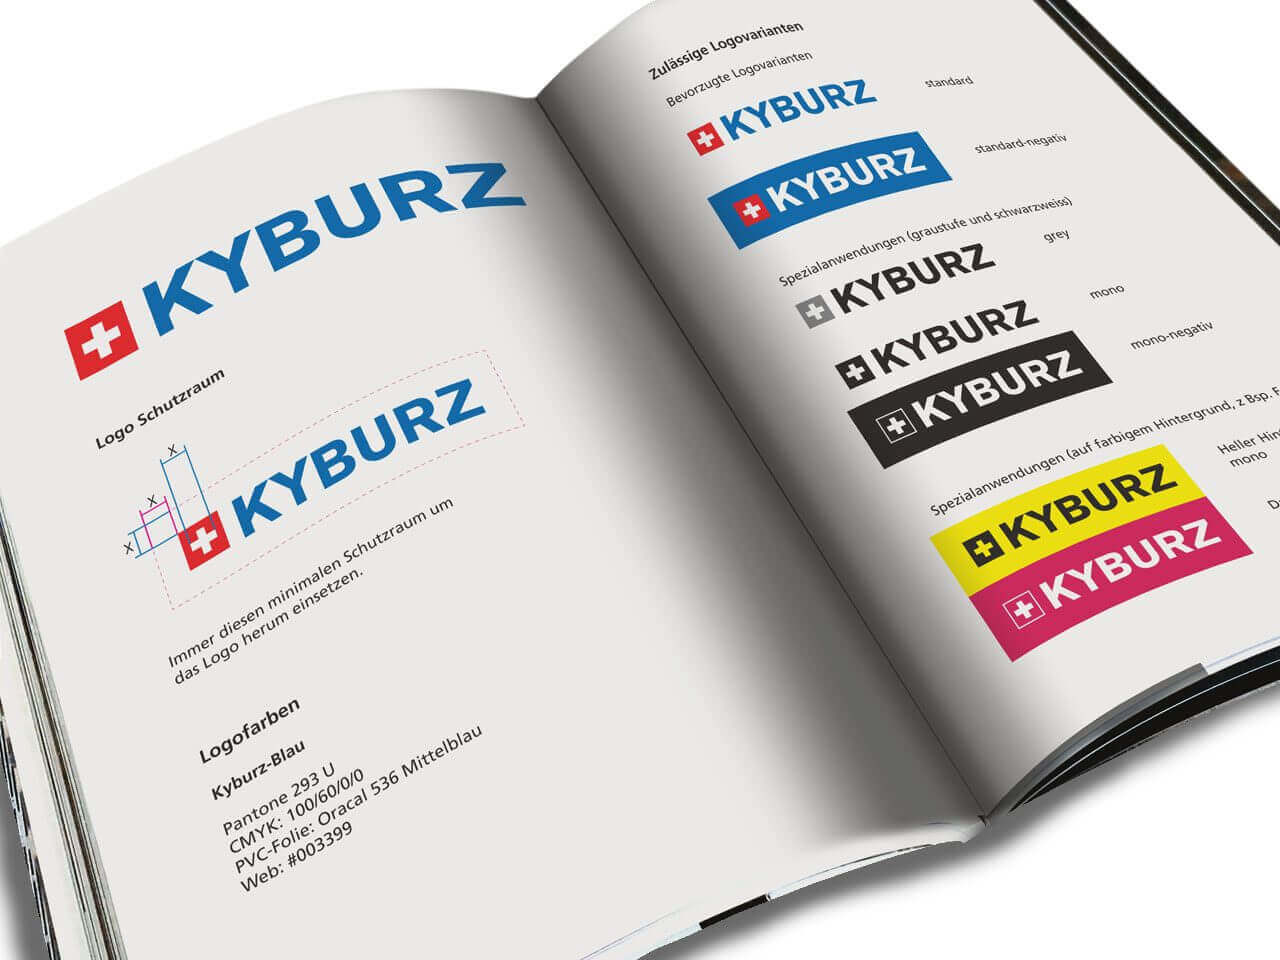 KYBURZ Corporate Design Manual